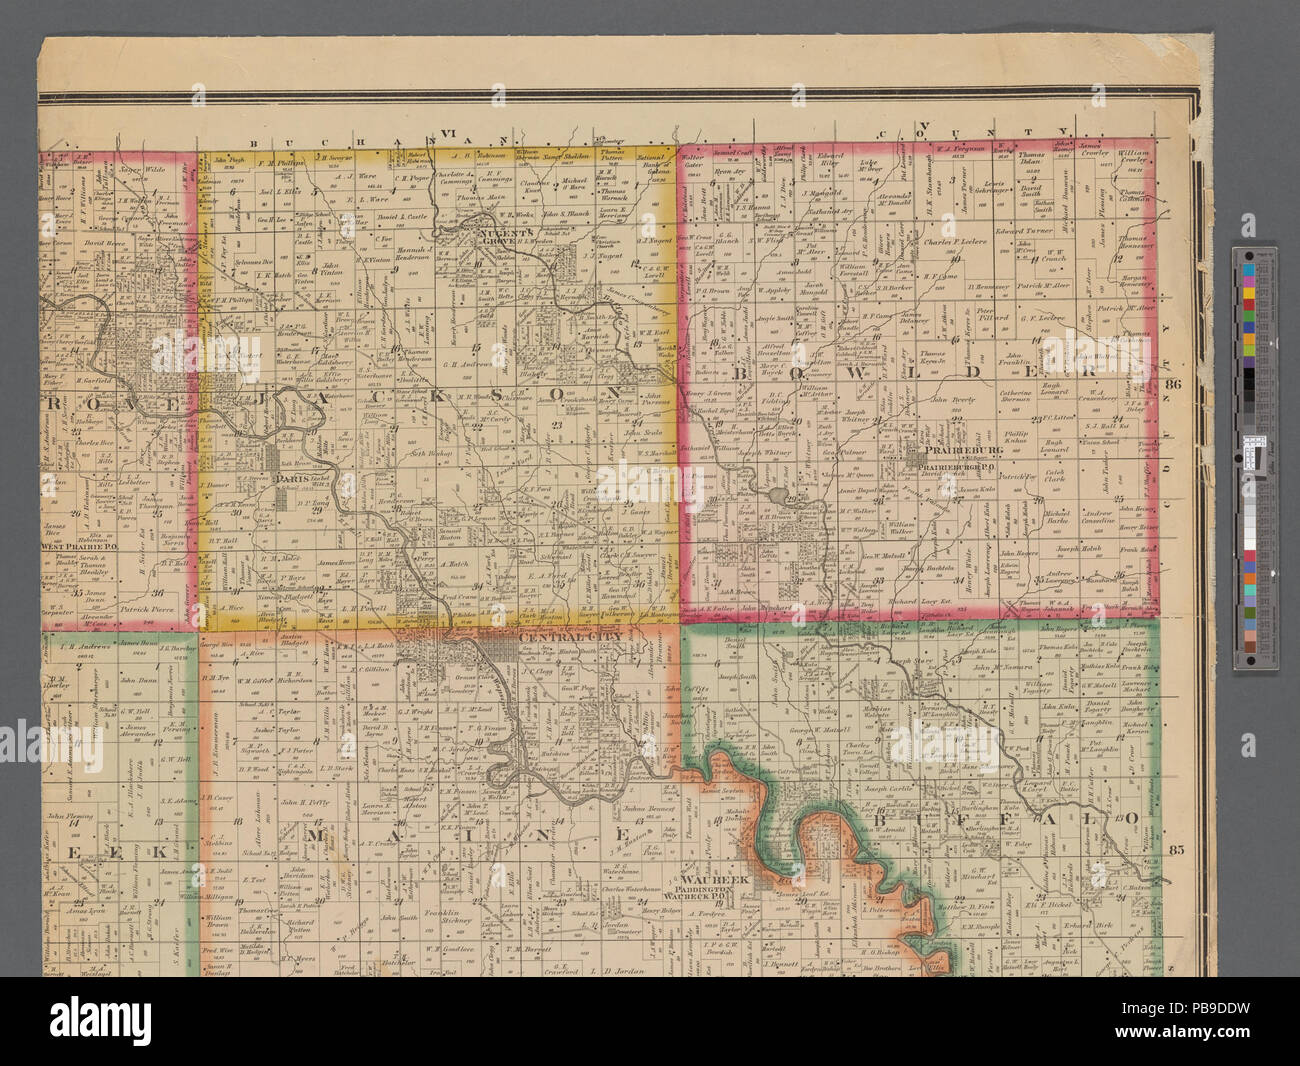 993 Map Of Linn County Iowa Nypl B11655881 5366944 Stock Photo